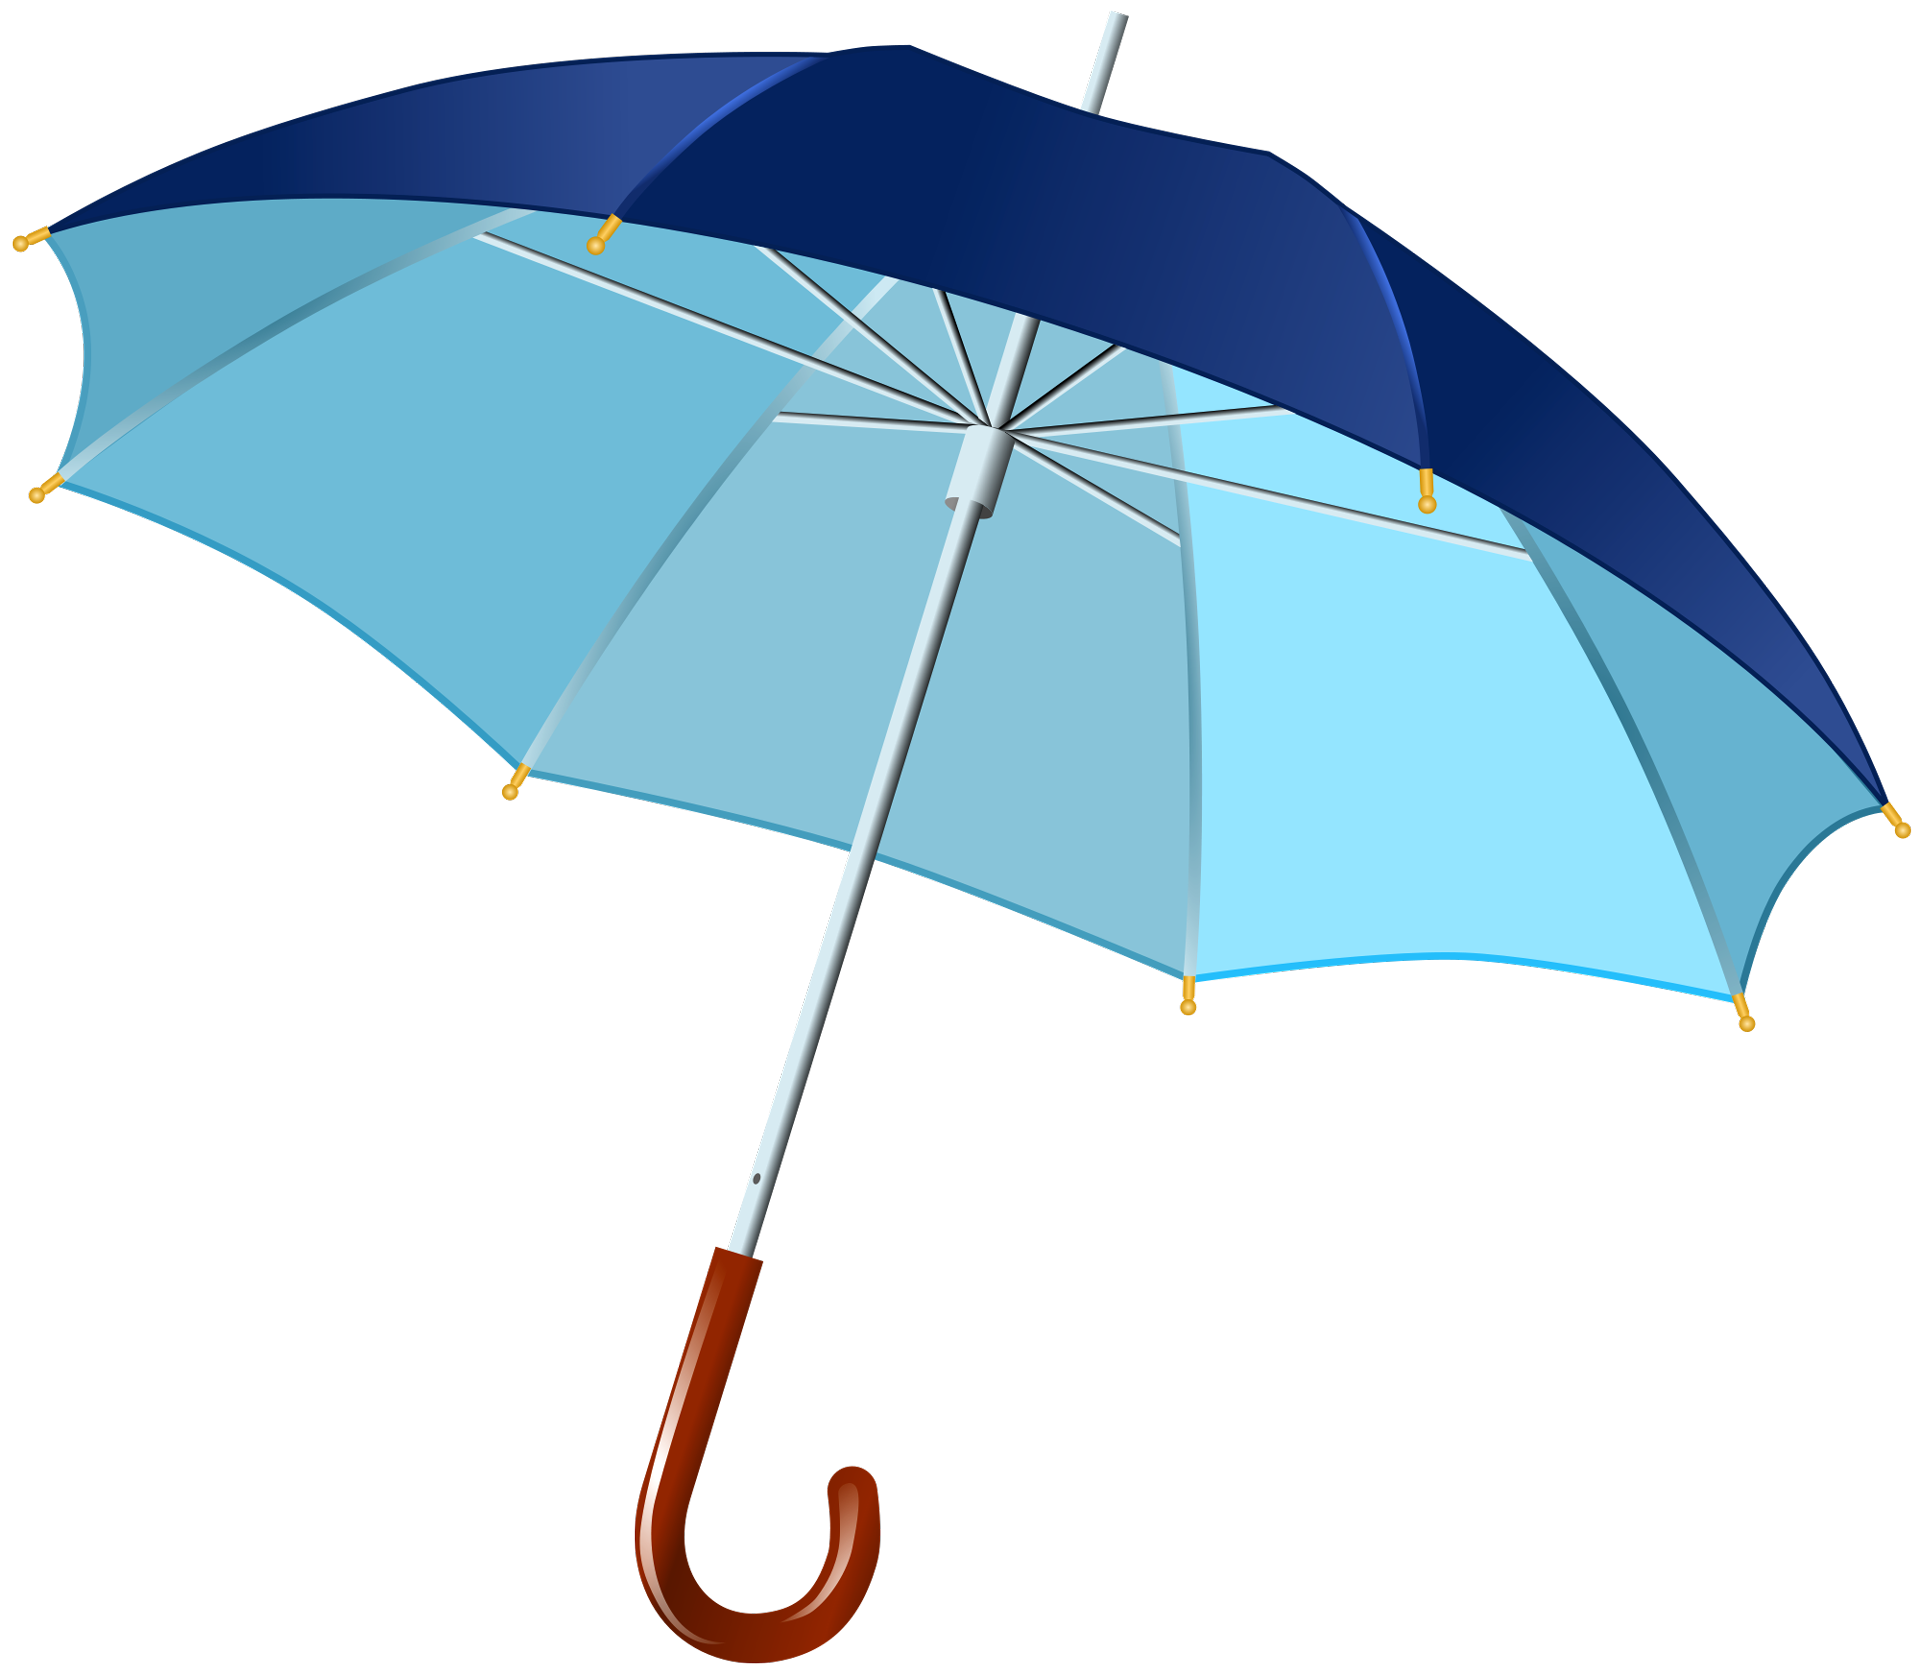 Umbrella PNG HD Background.